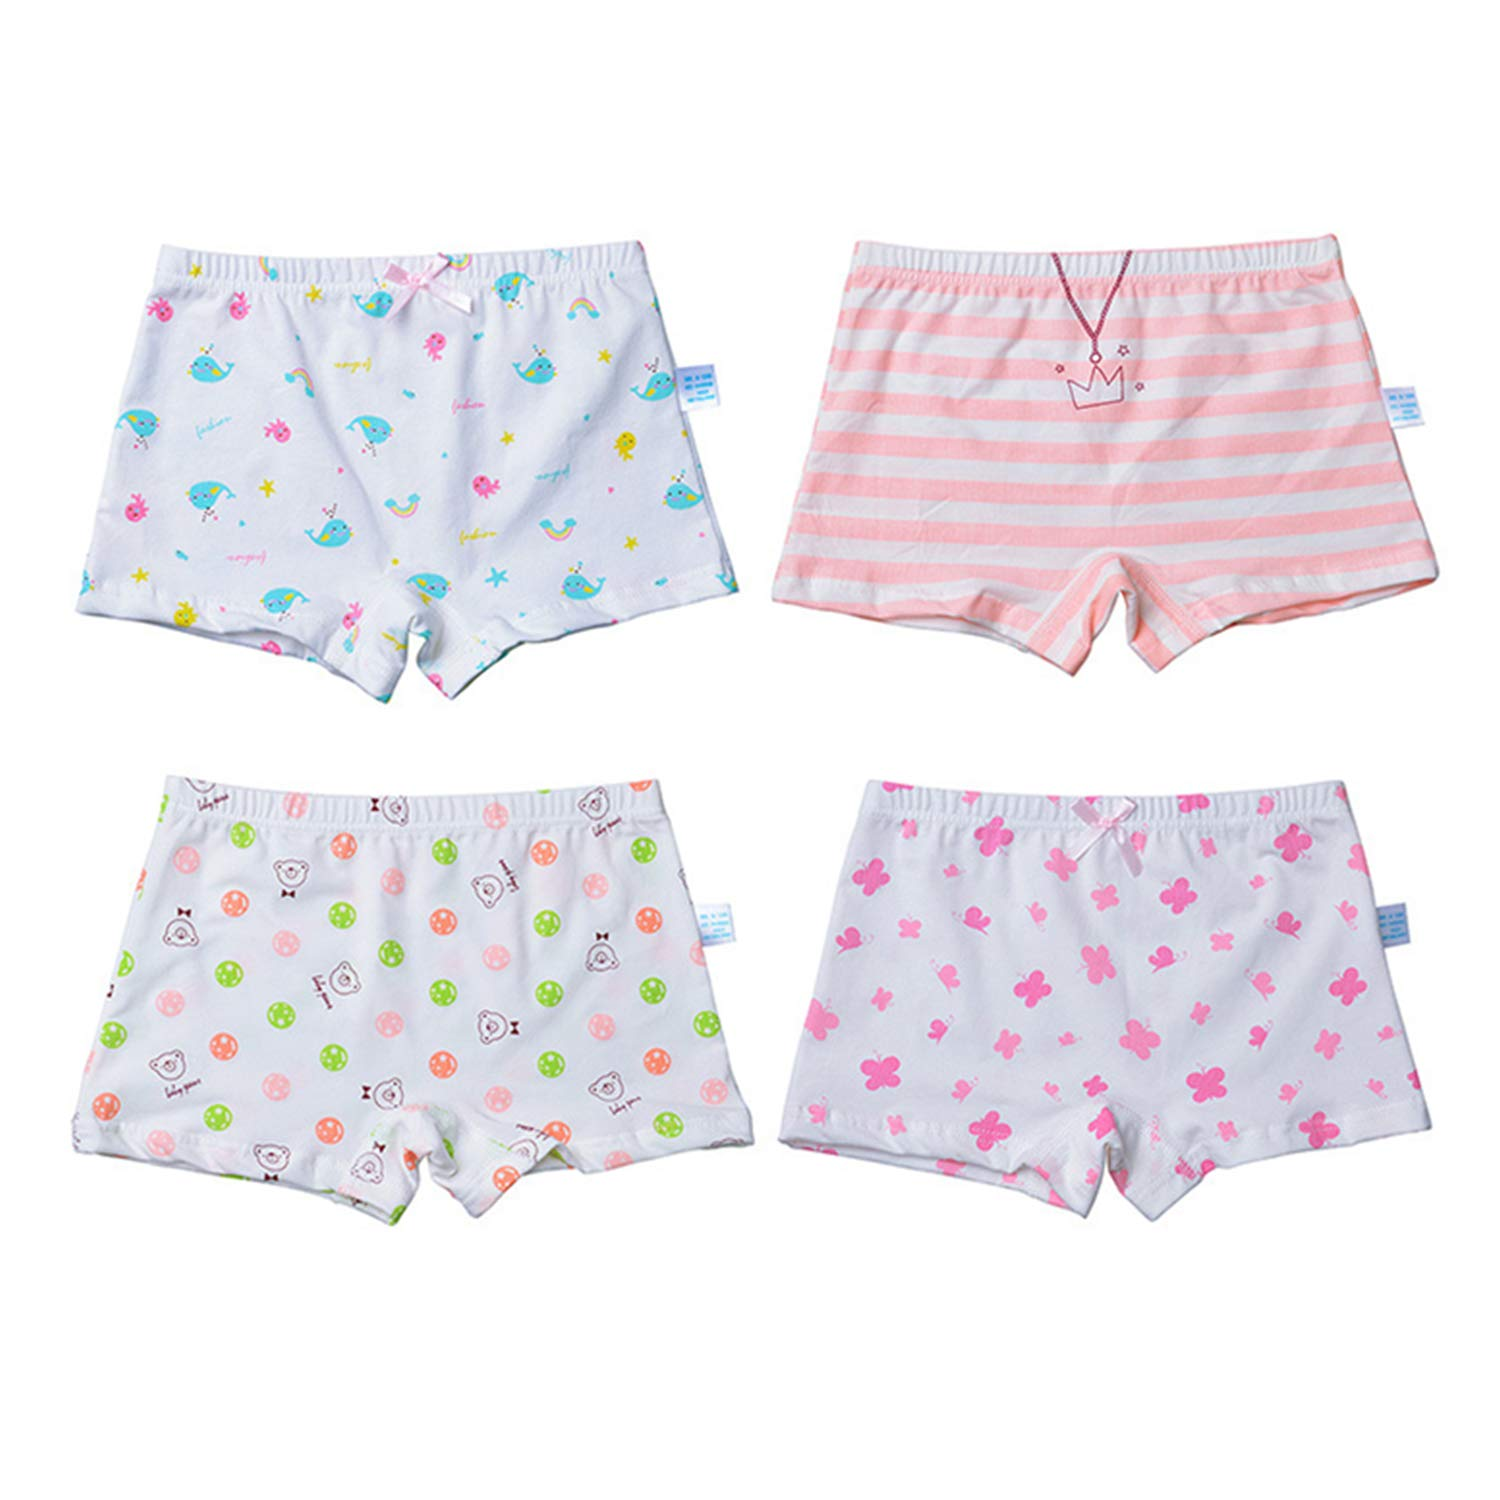 Bubble2 Girls Kids Underwear Assorted Cotton Brief Panties Pack of 4 L